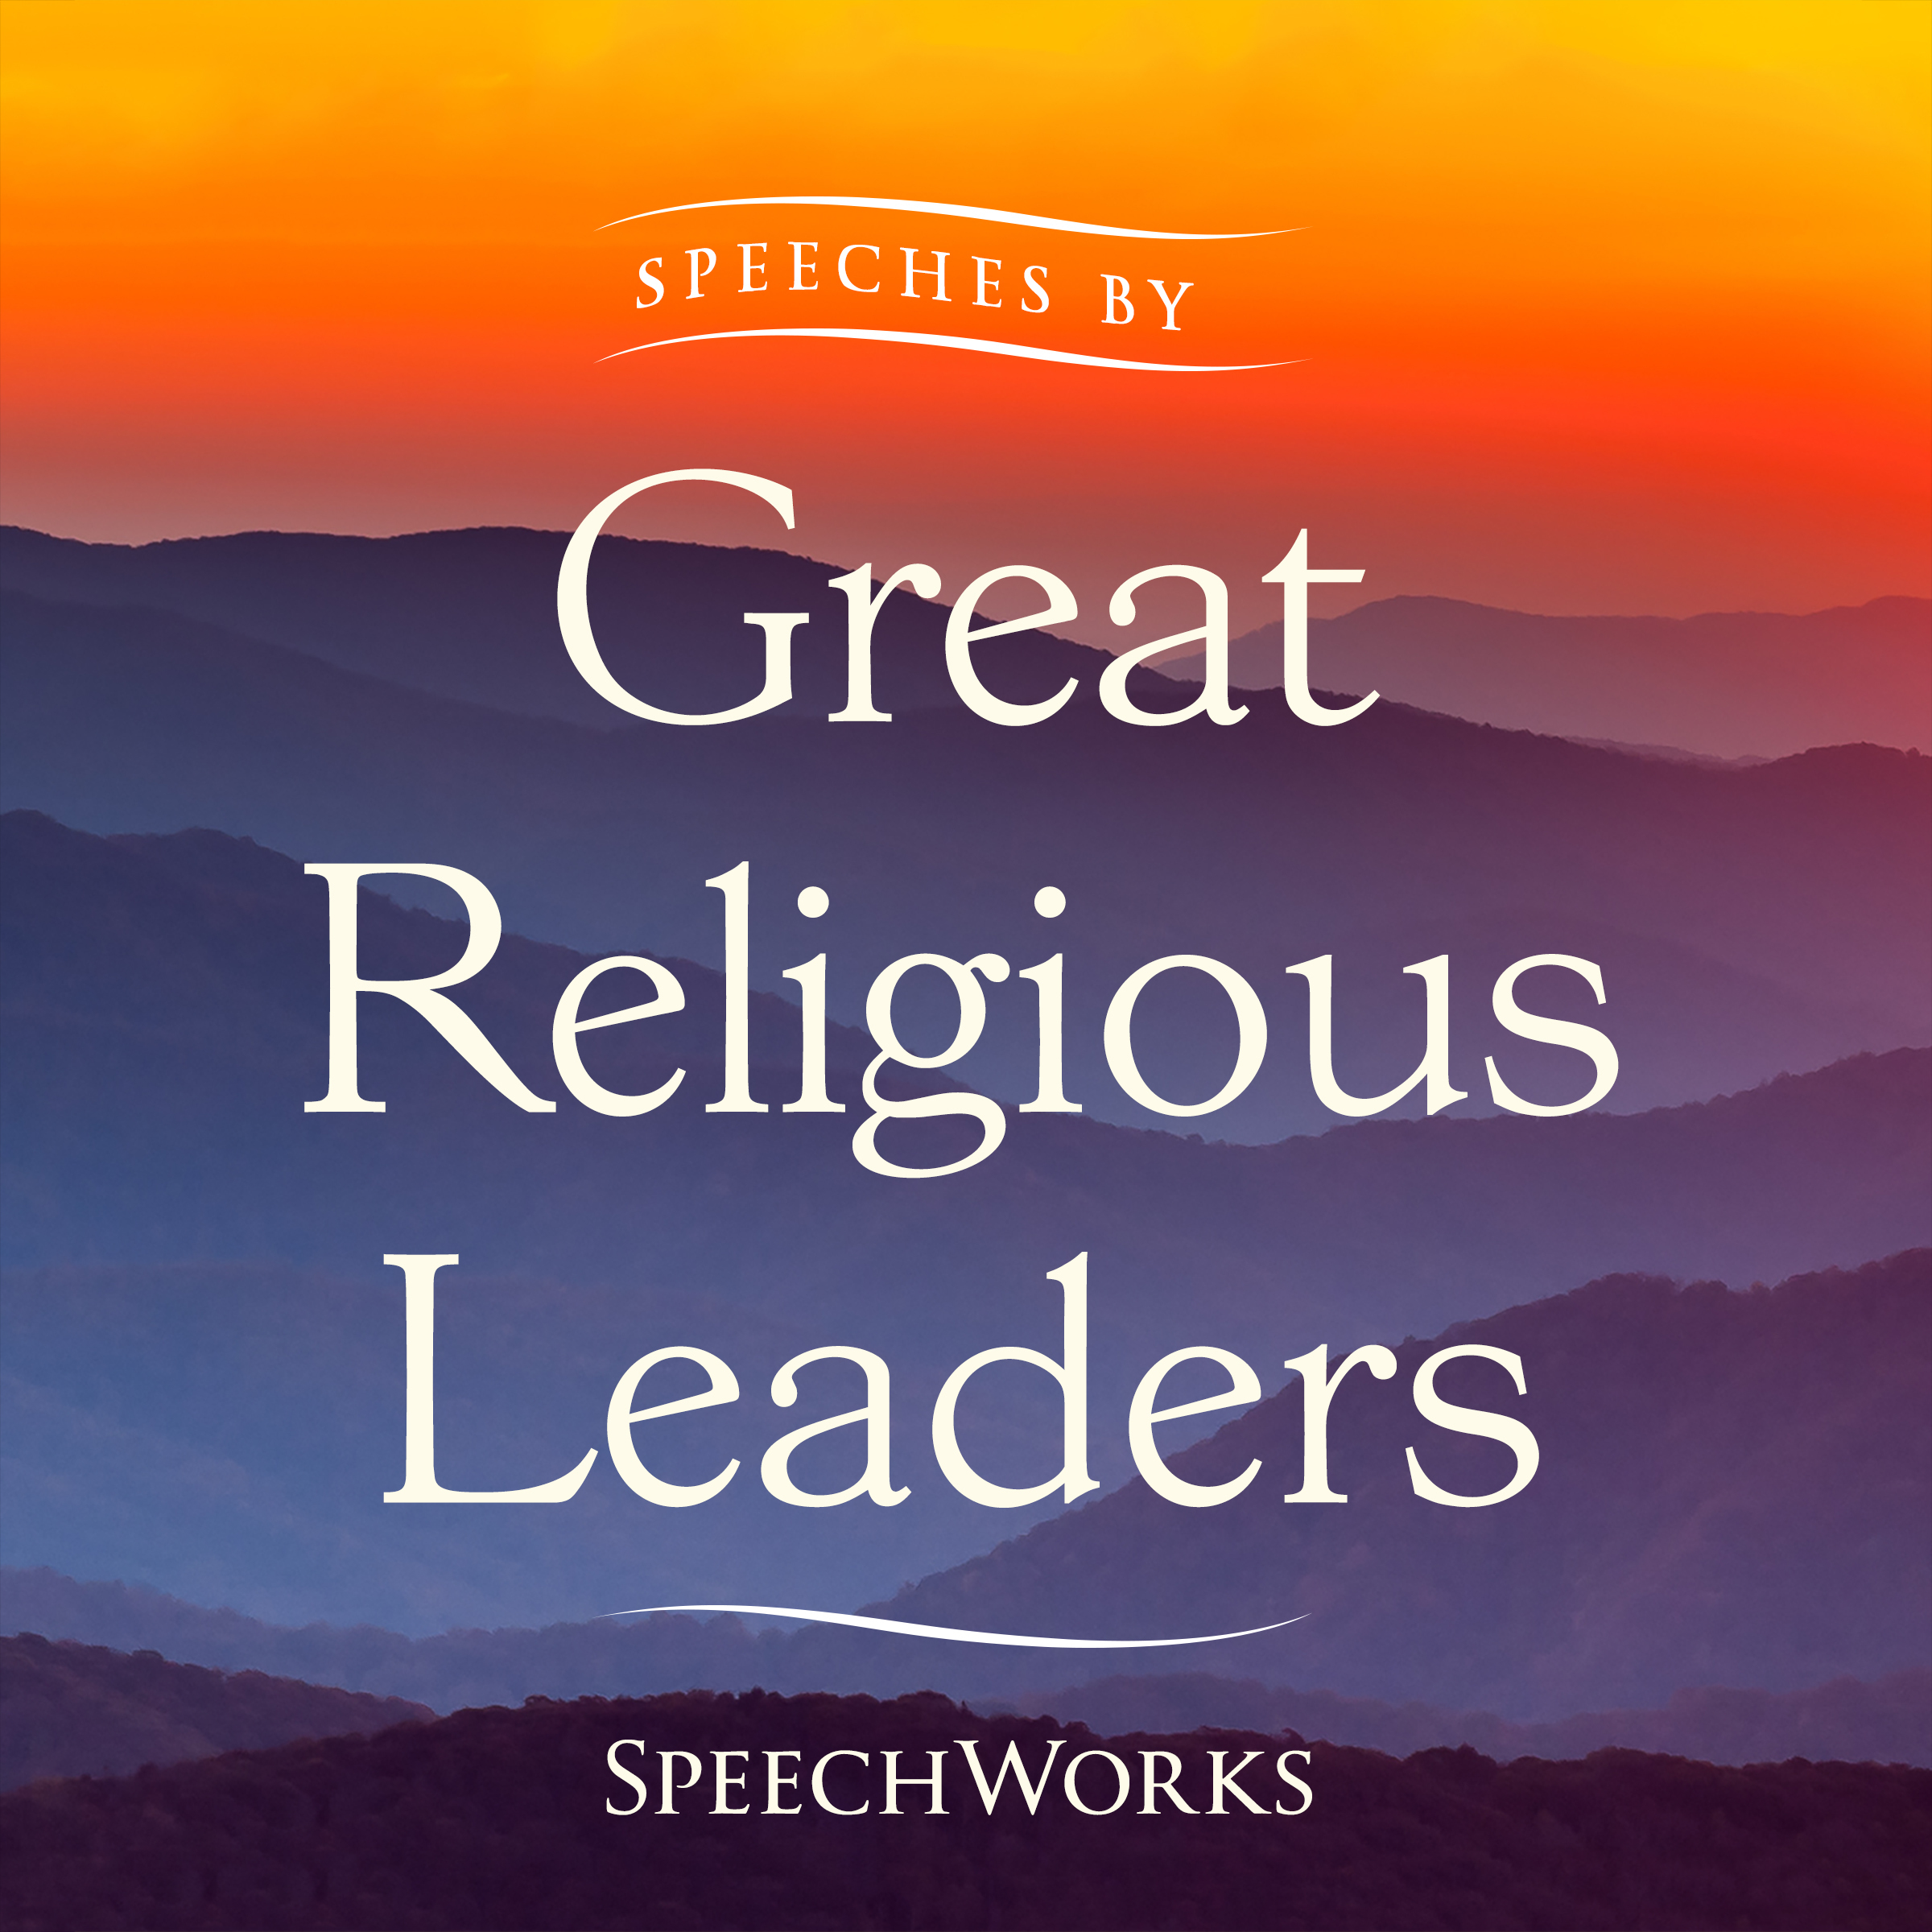 Printable Speeches by Great Religious Leaders  Audiobook Cover Art